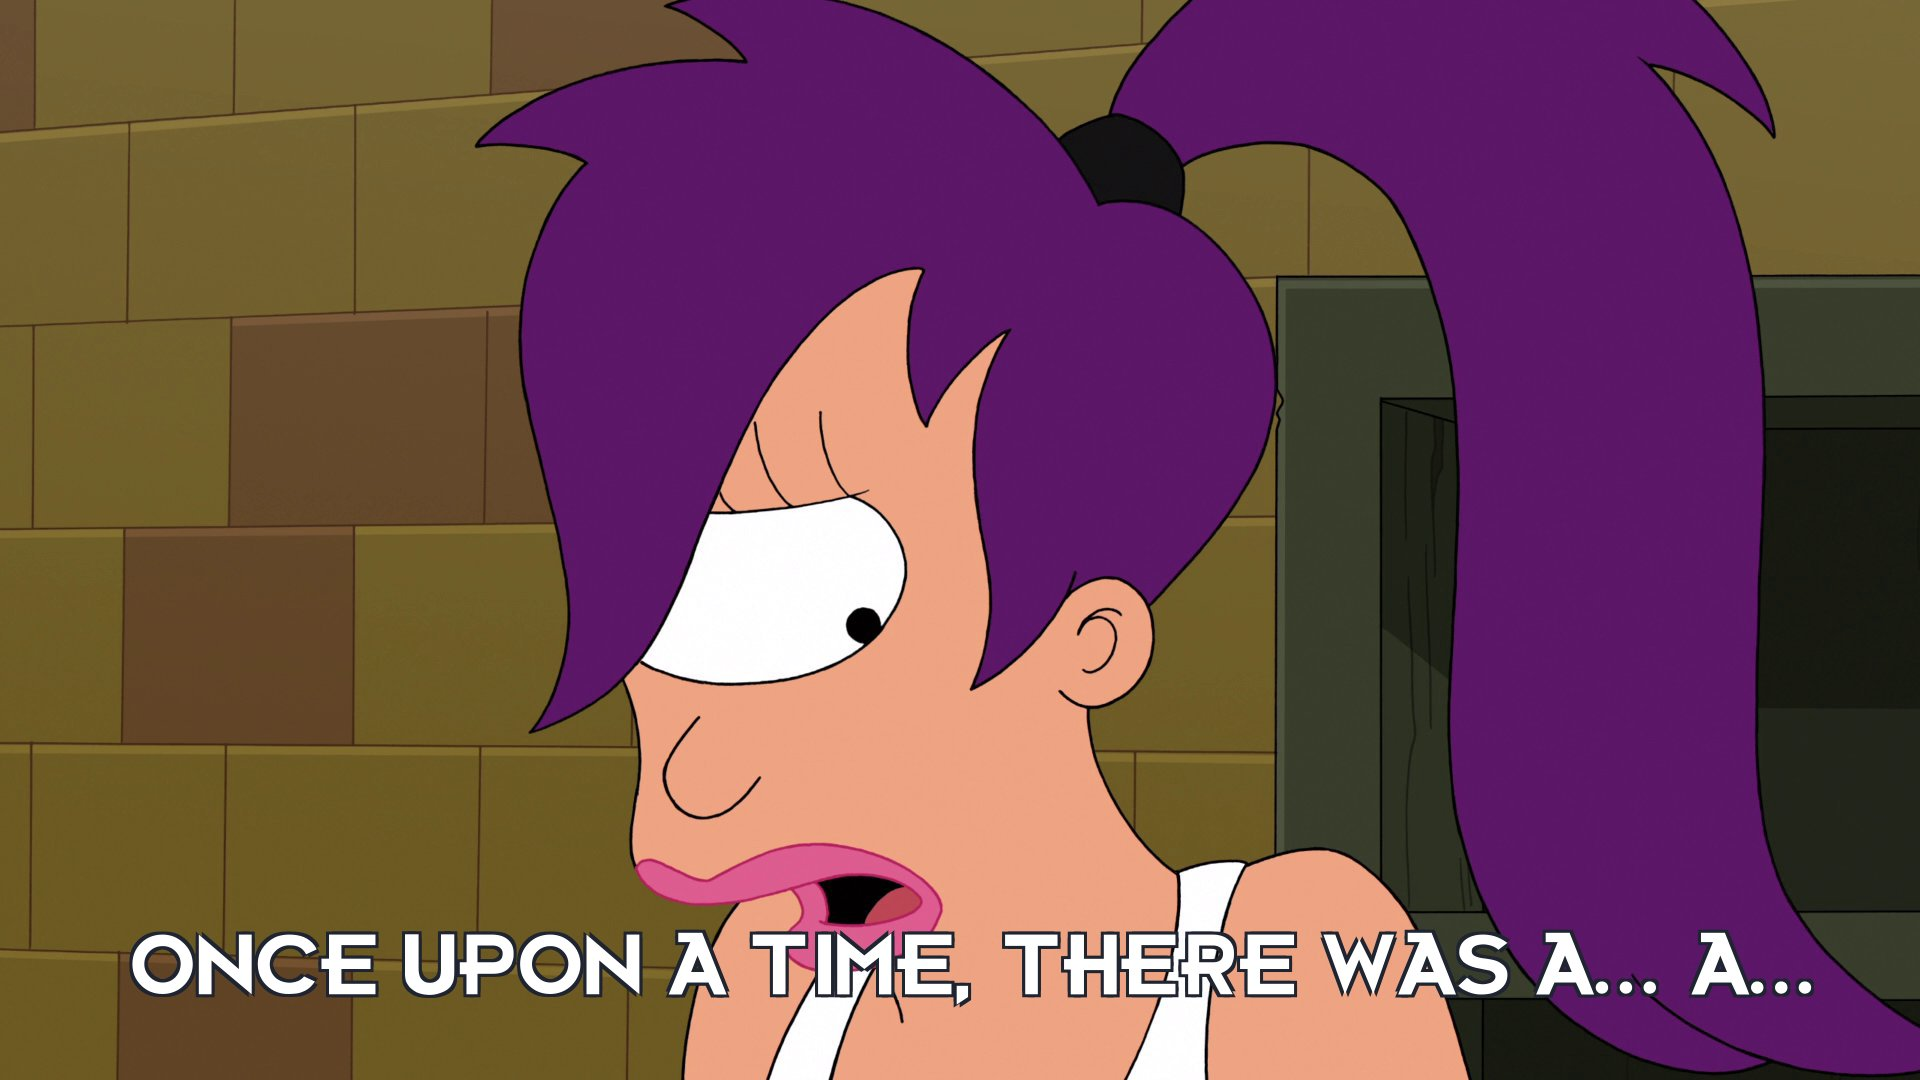 Turanga Leela: Once upon a time, there was a... a...